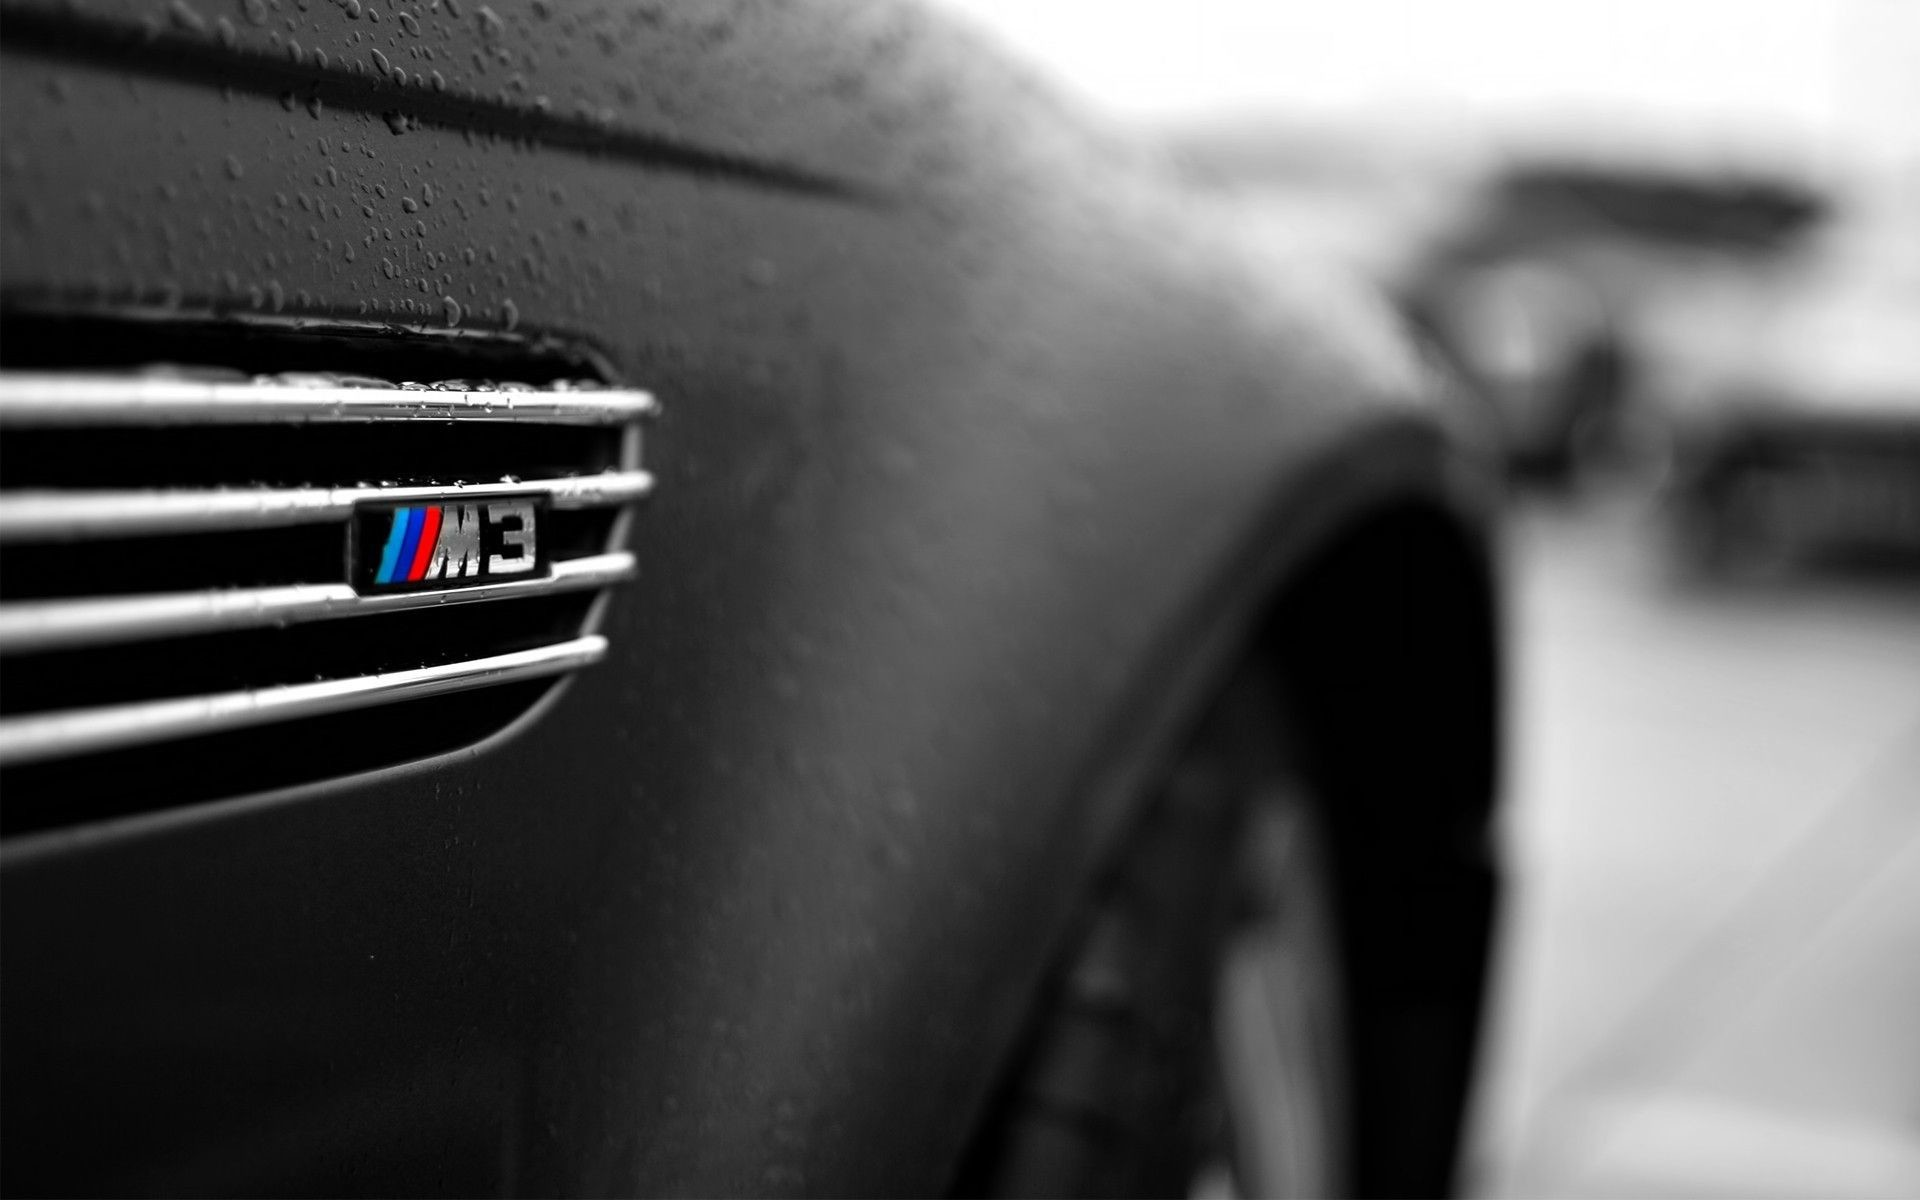 Bmw M3 Wallpapers – Full HD Wallpaper Search | BMW | Pinterest | Wallpapers,  BMW